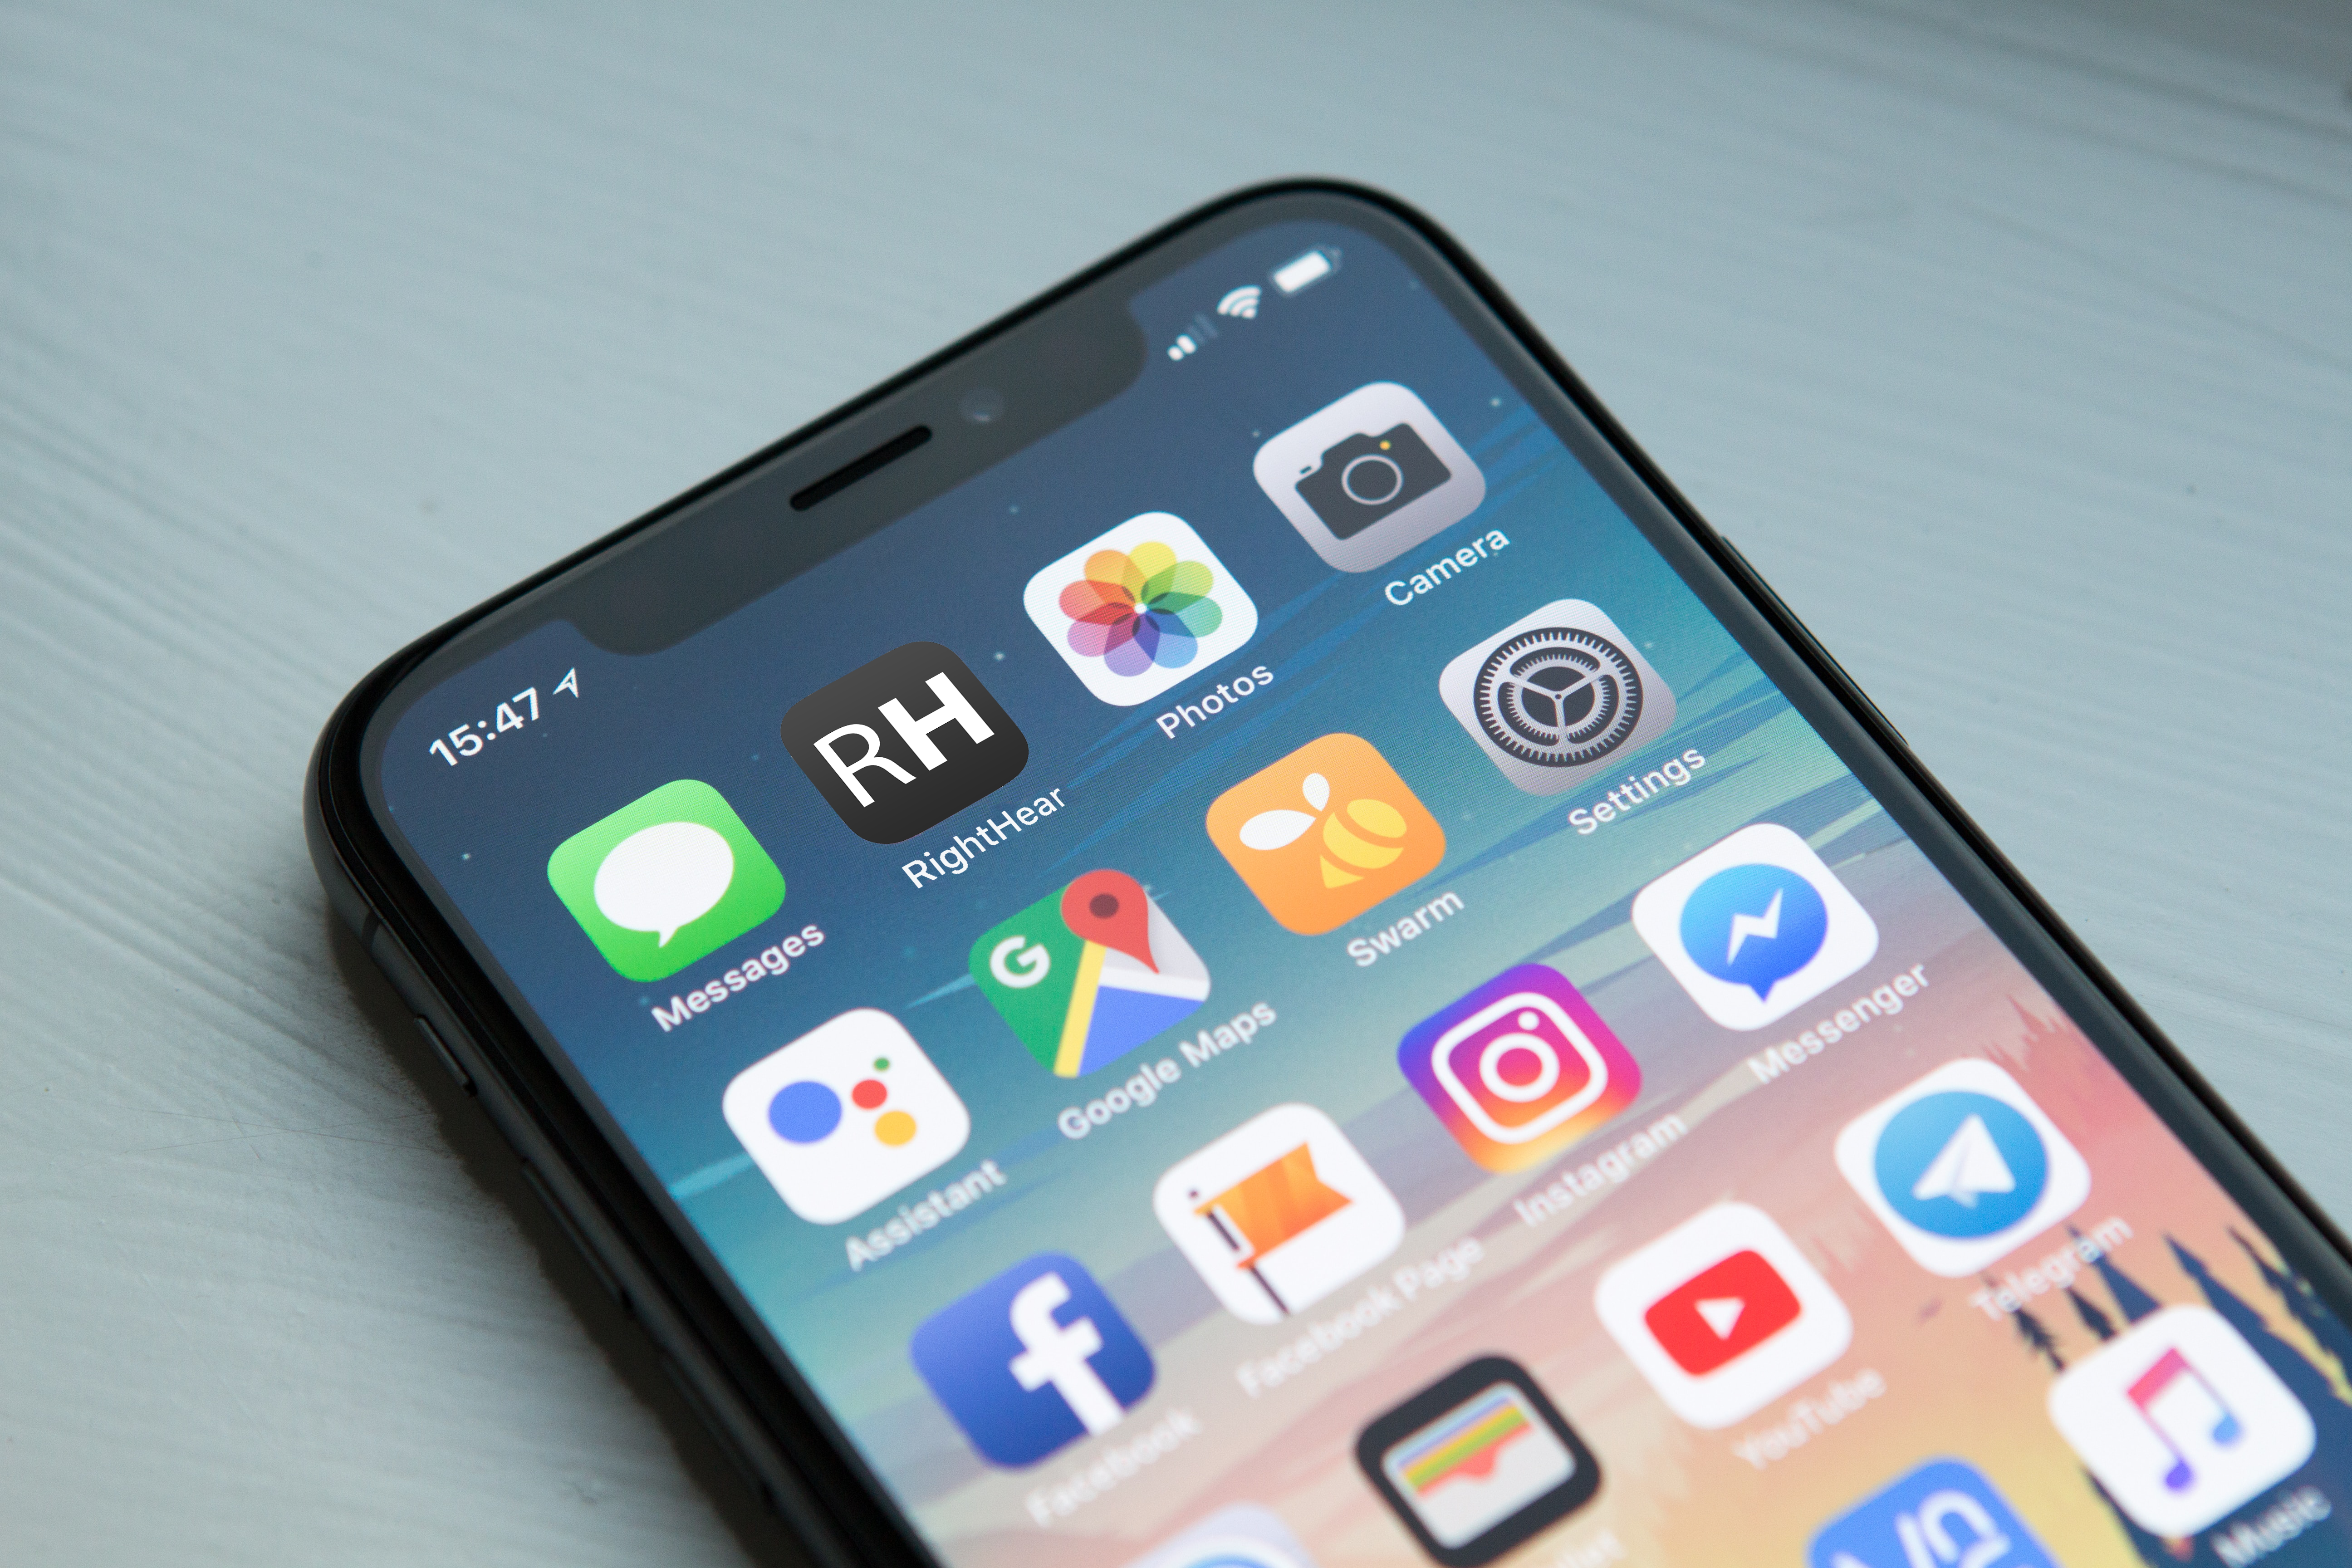 Different apps on an iPhone screen